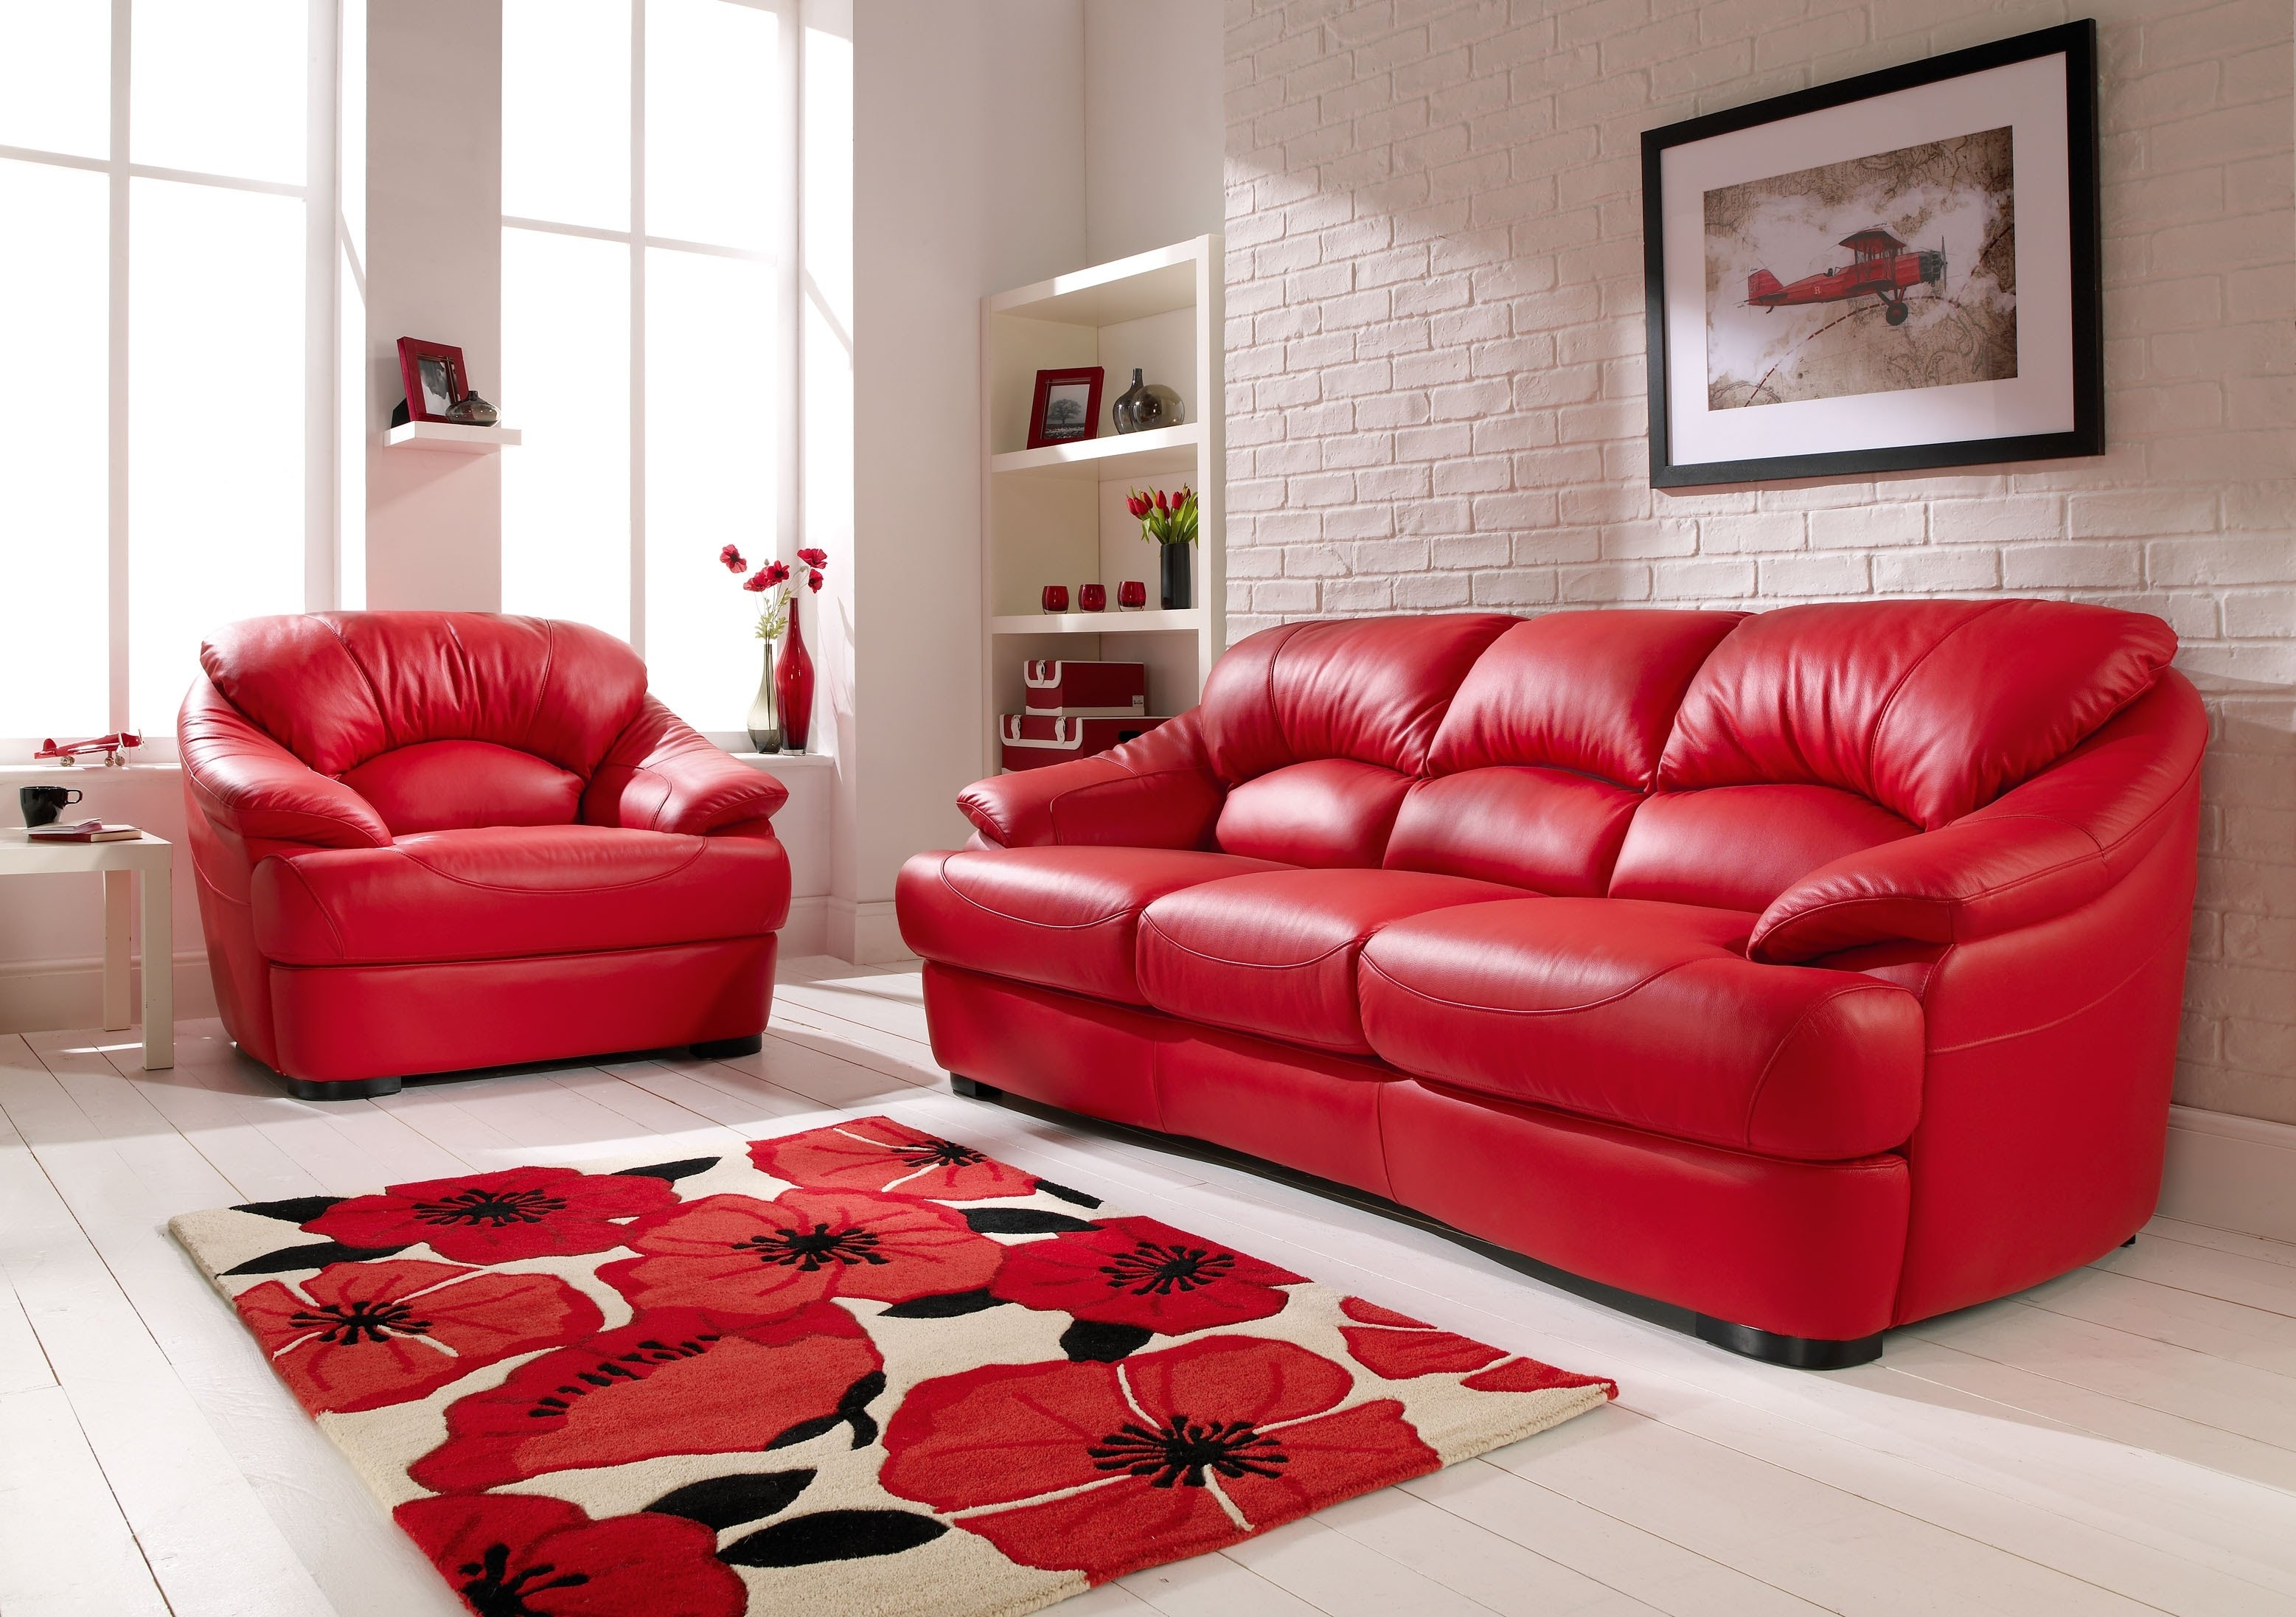 Red Leather Sofa - Youtube intended for Red Leather Couches (Image 11 of 15)